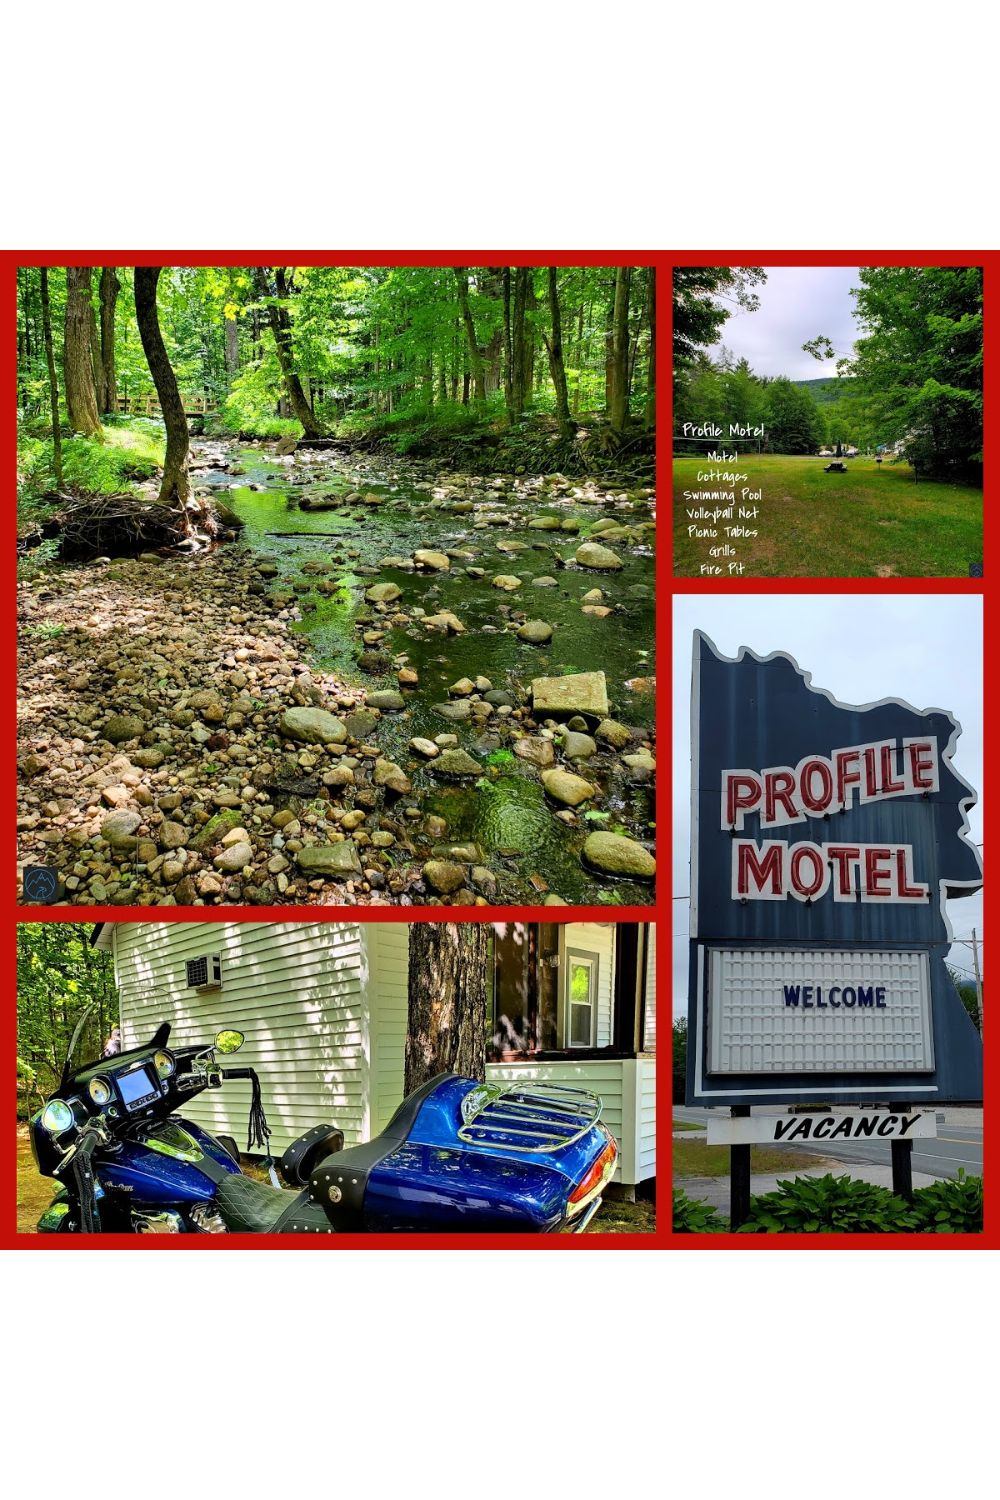 Profile Motel in Lincoln NH-Photo Gallery